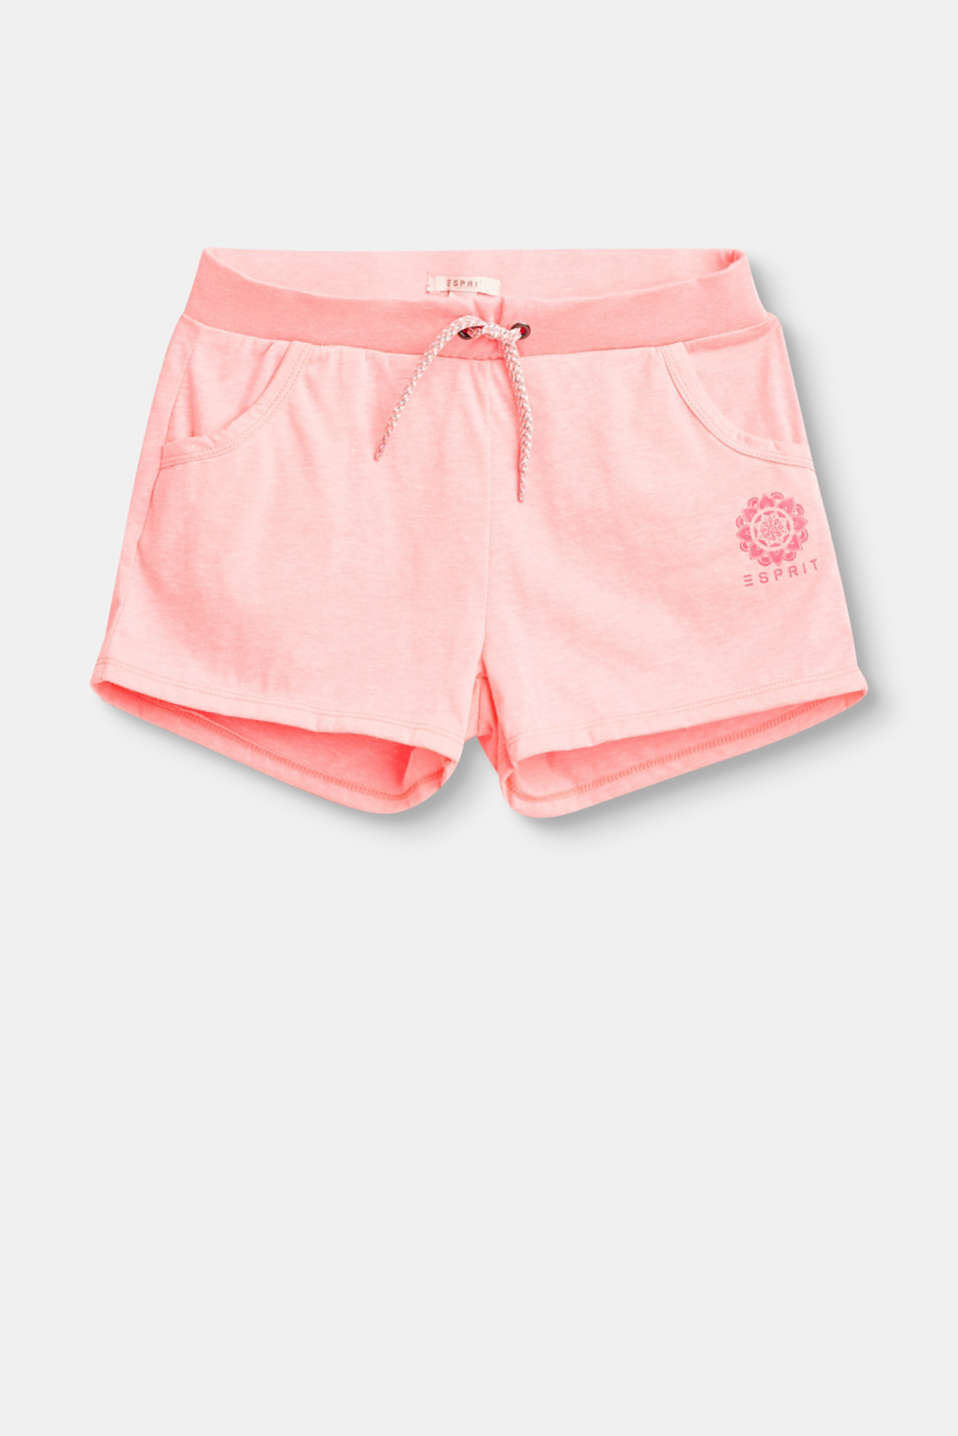 Sporty summer look: These soft shorts come with slit pockets, a colourful drawstring and a super comfy elasticated waistband.